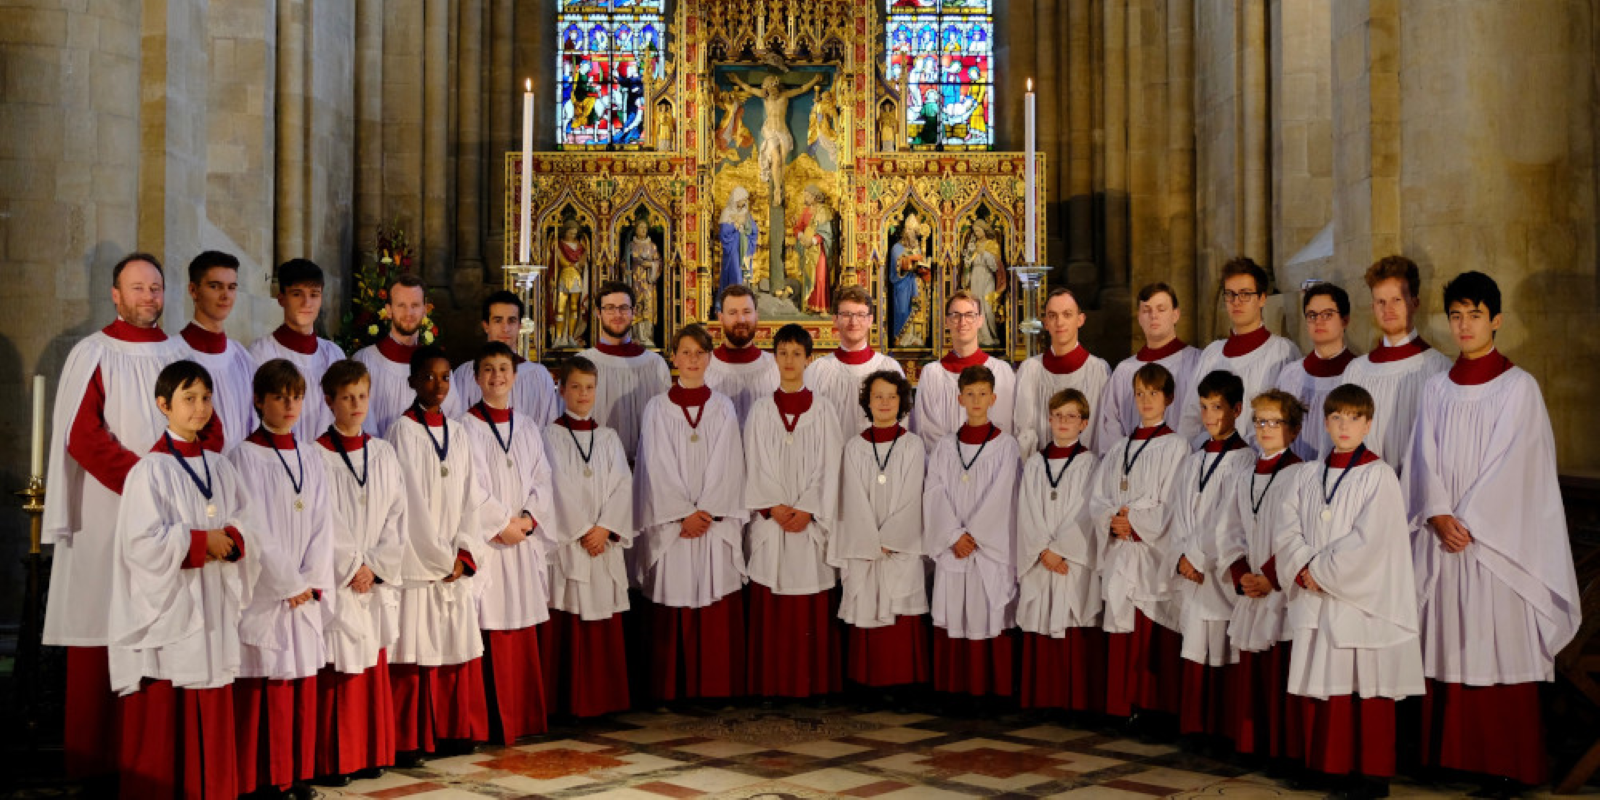 Choir_in_Cathedral_Landscape 1600x800.png